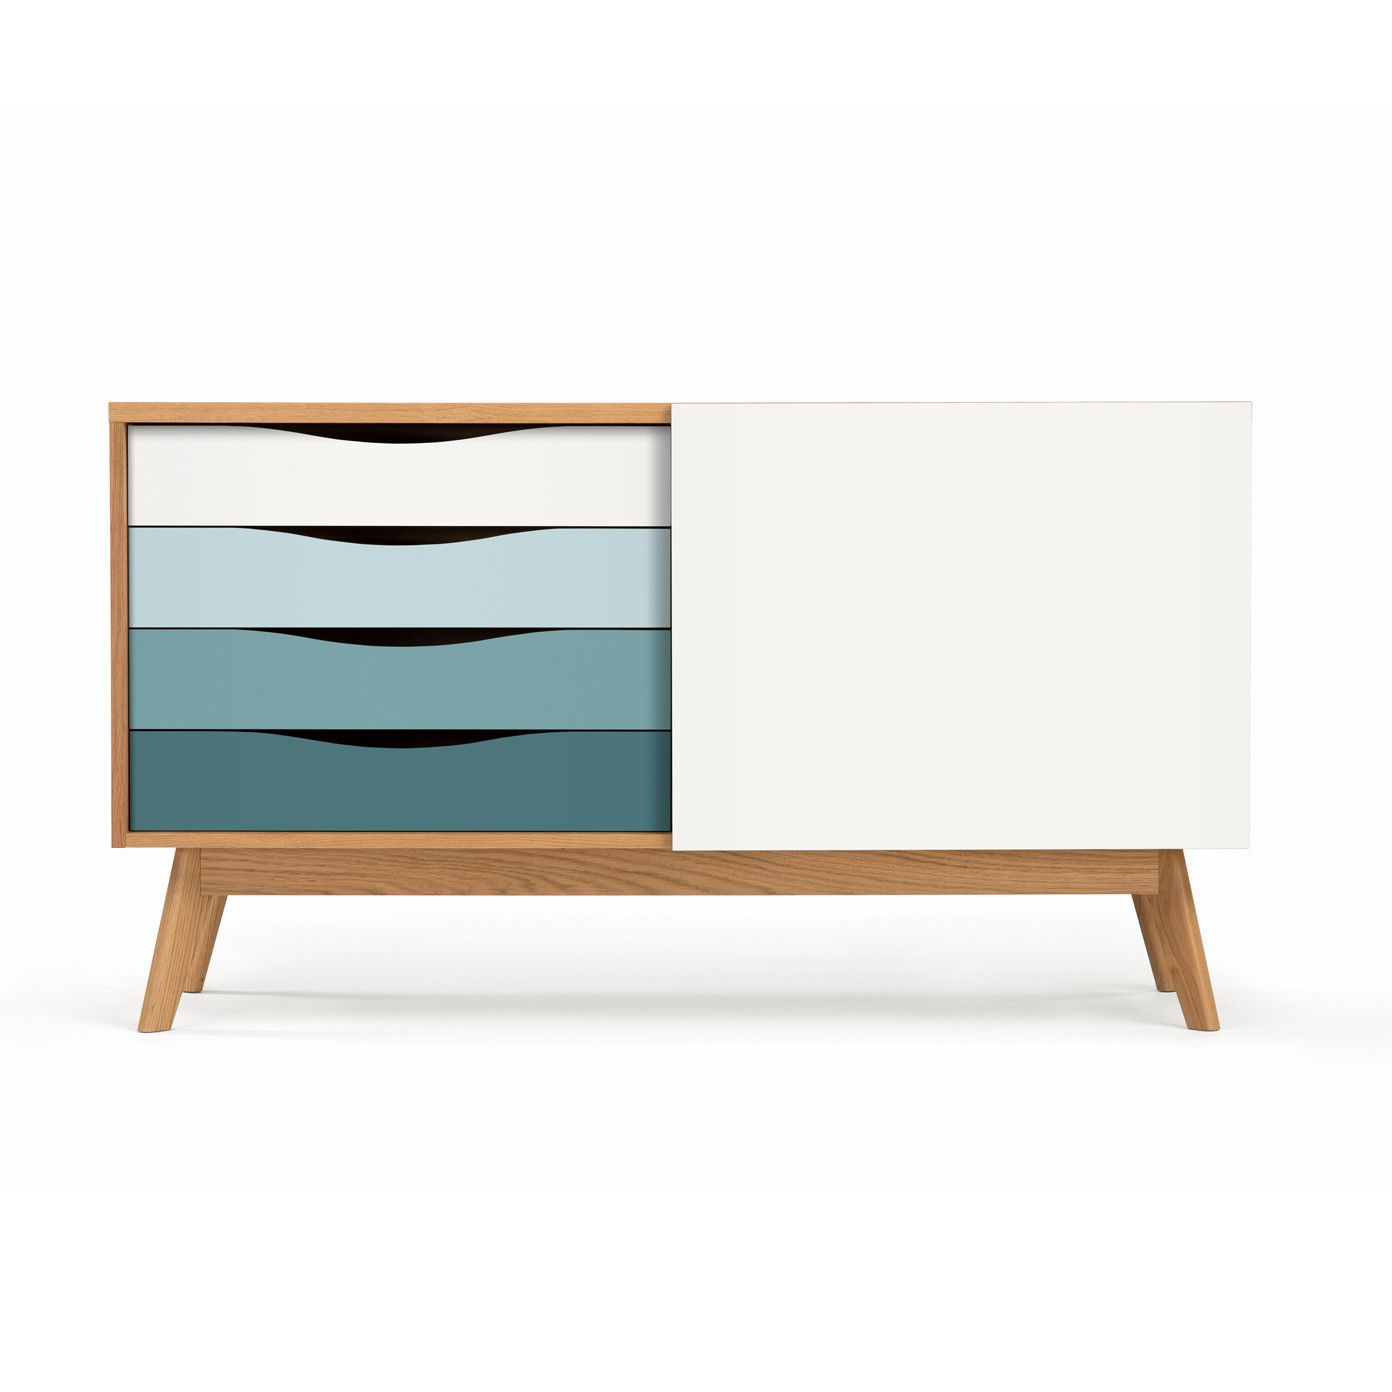 Designer Möbel Within 2019 Corrugated Natural 4 Drawer Sideboards (Gallery 12 of 20)